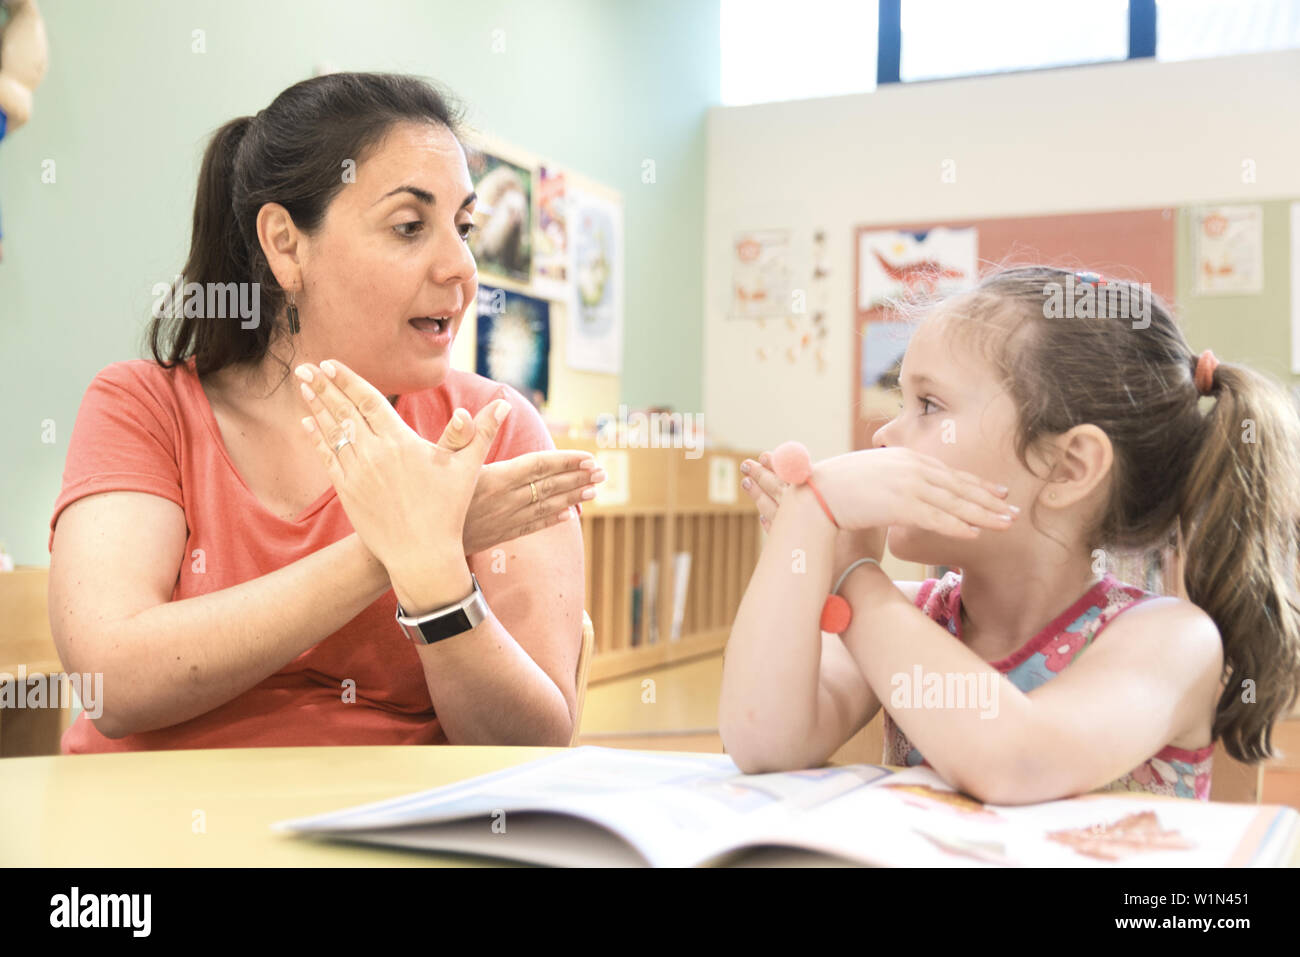 Sign language teacher in a extra tutoring class with a deaf child girl using American Sign Language. - Stock Image